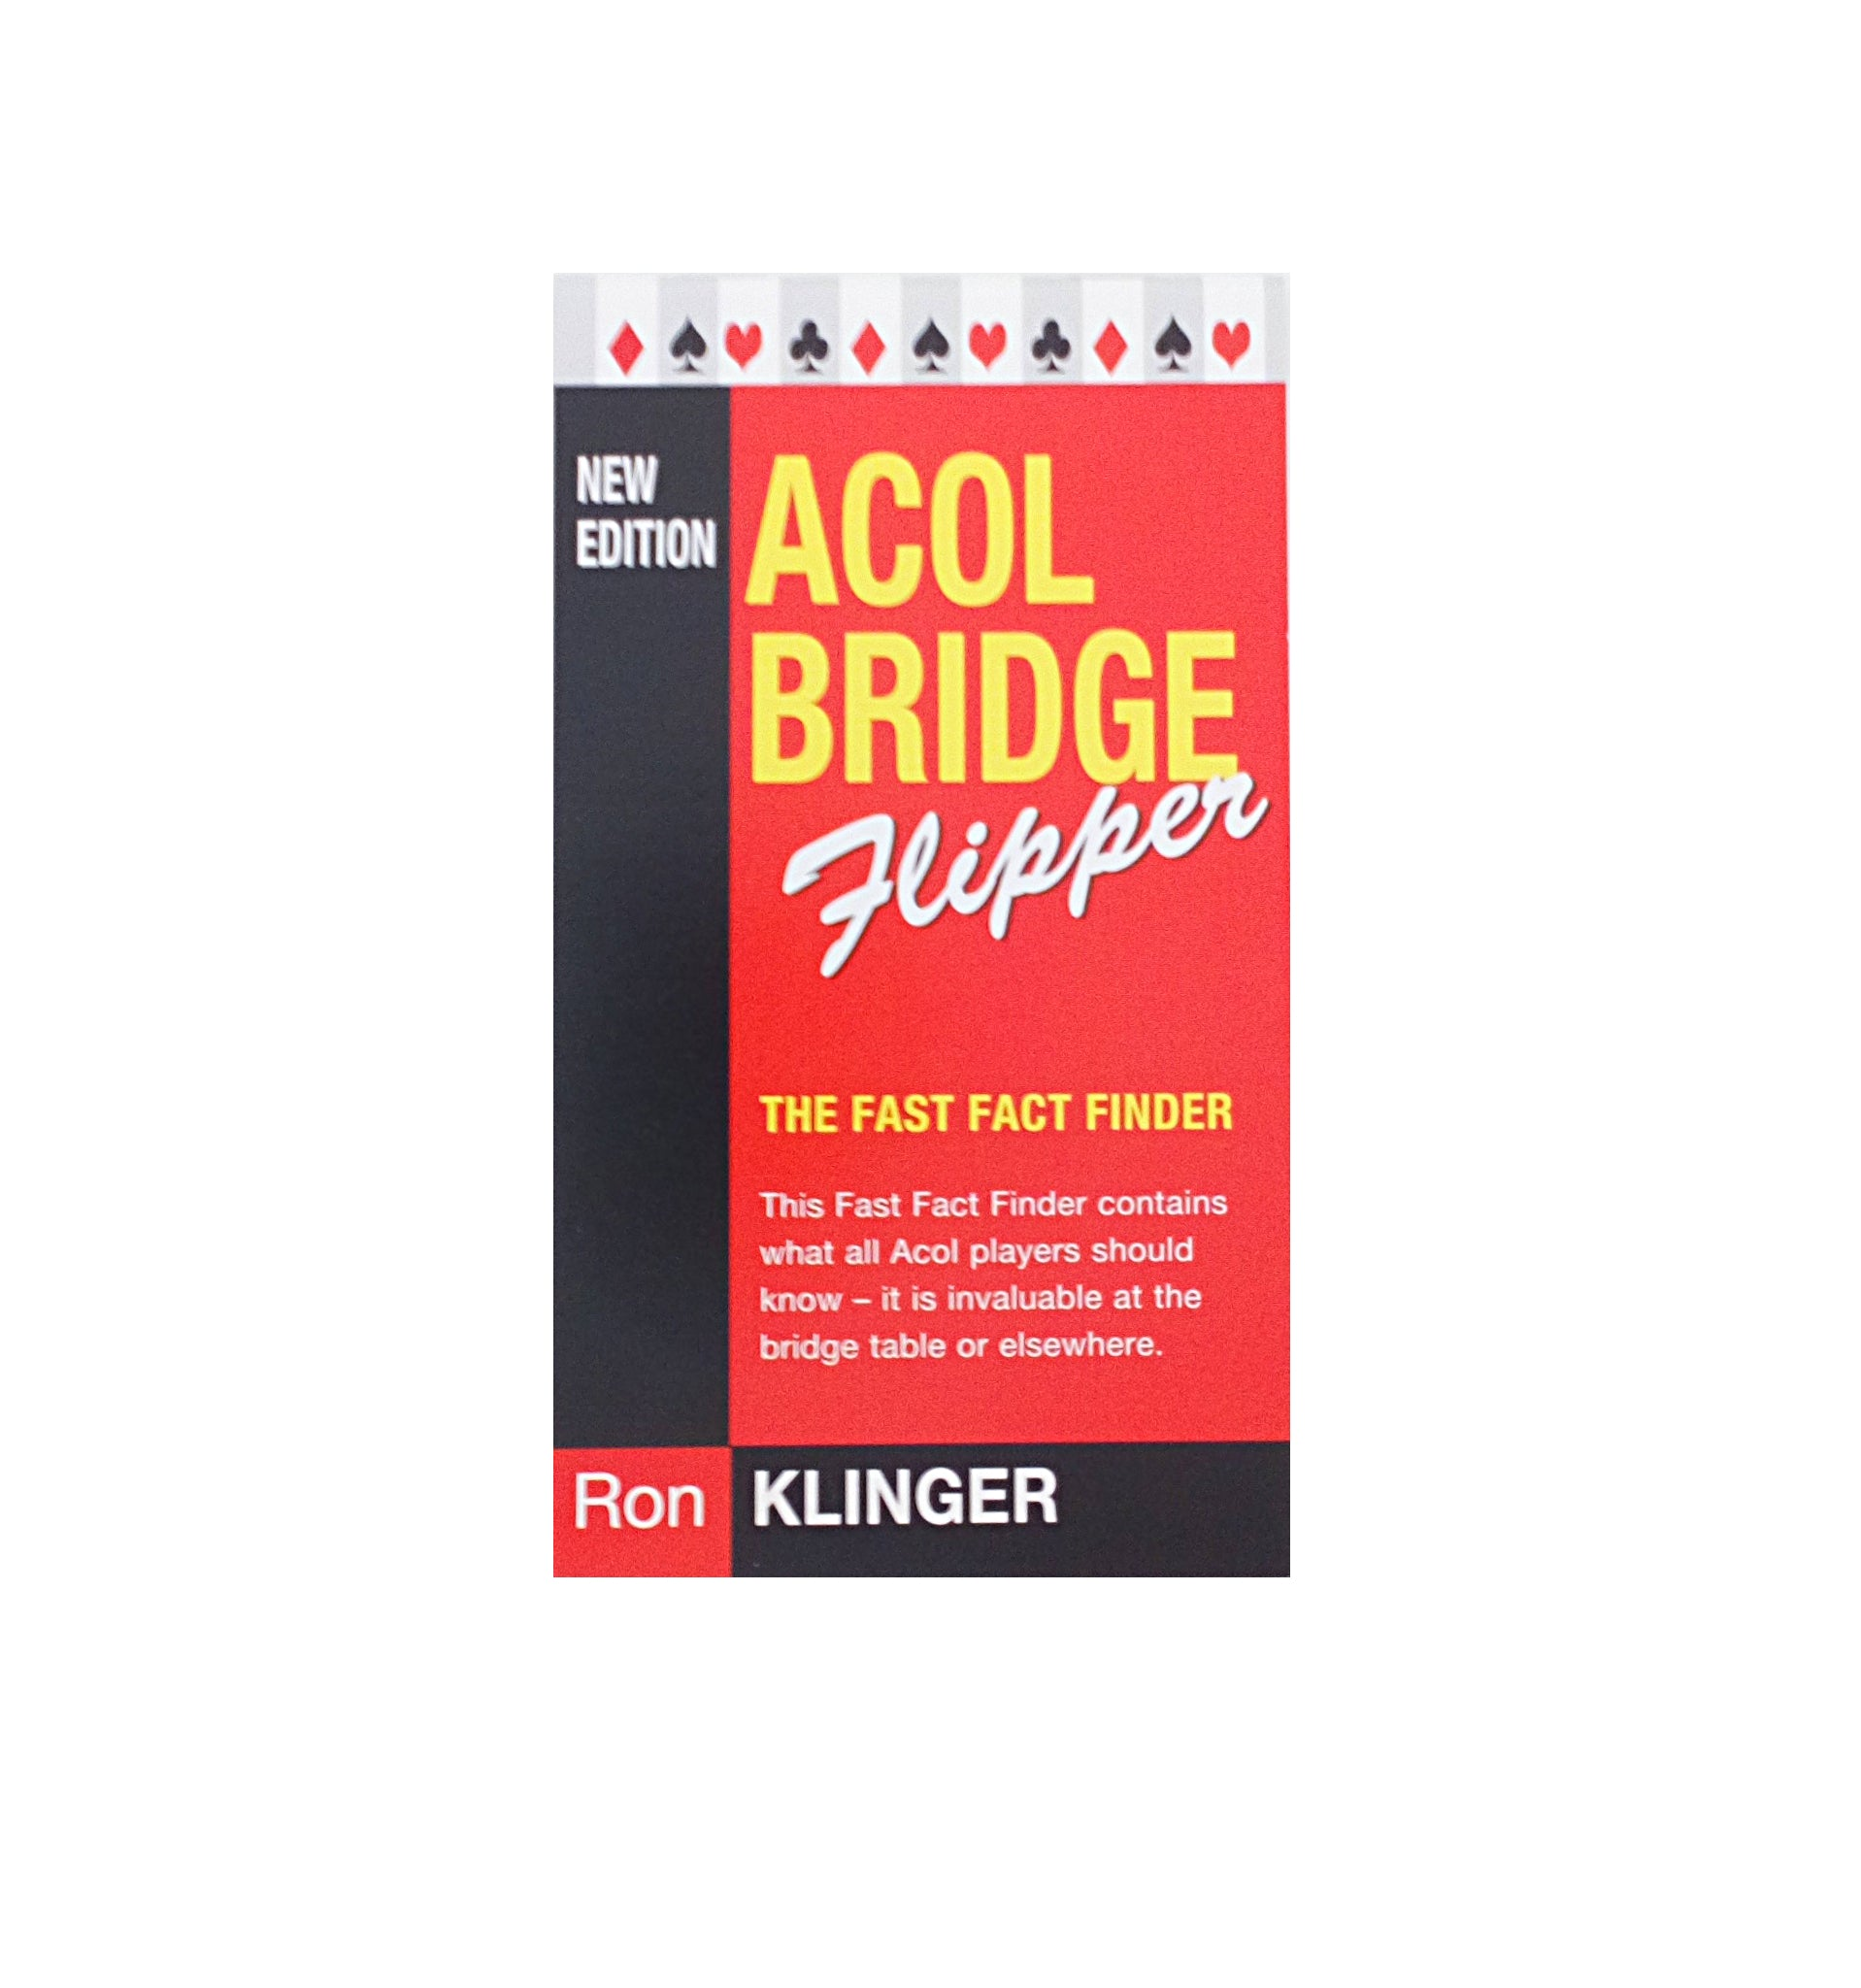 Acol Bridge Flipper